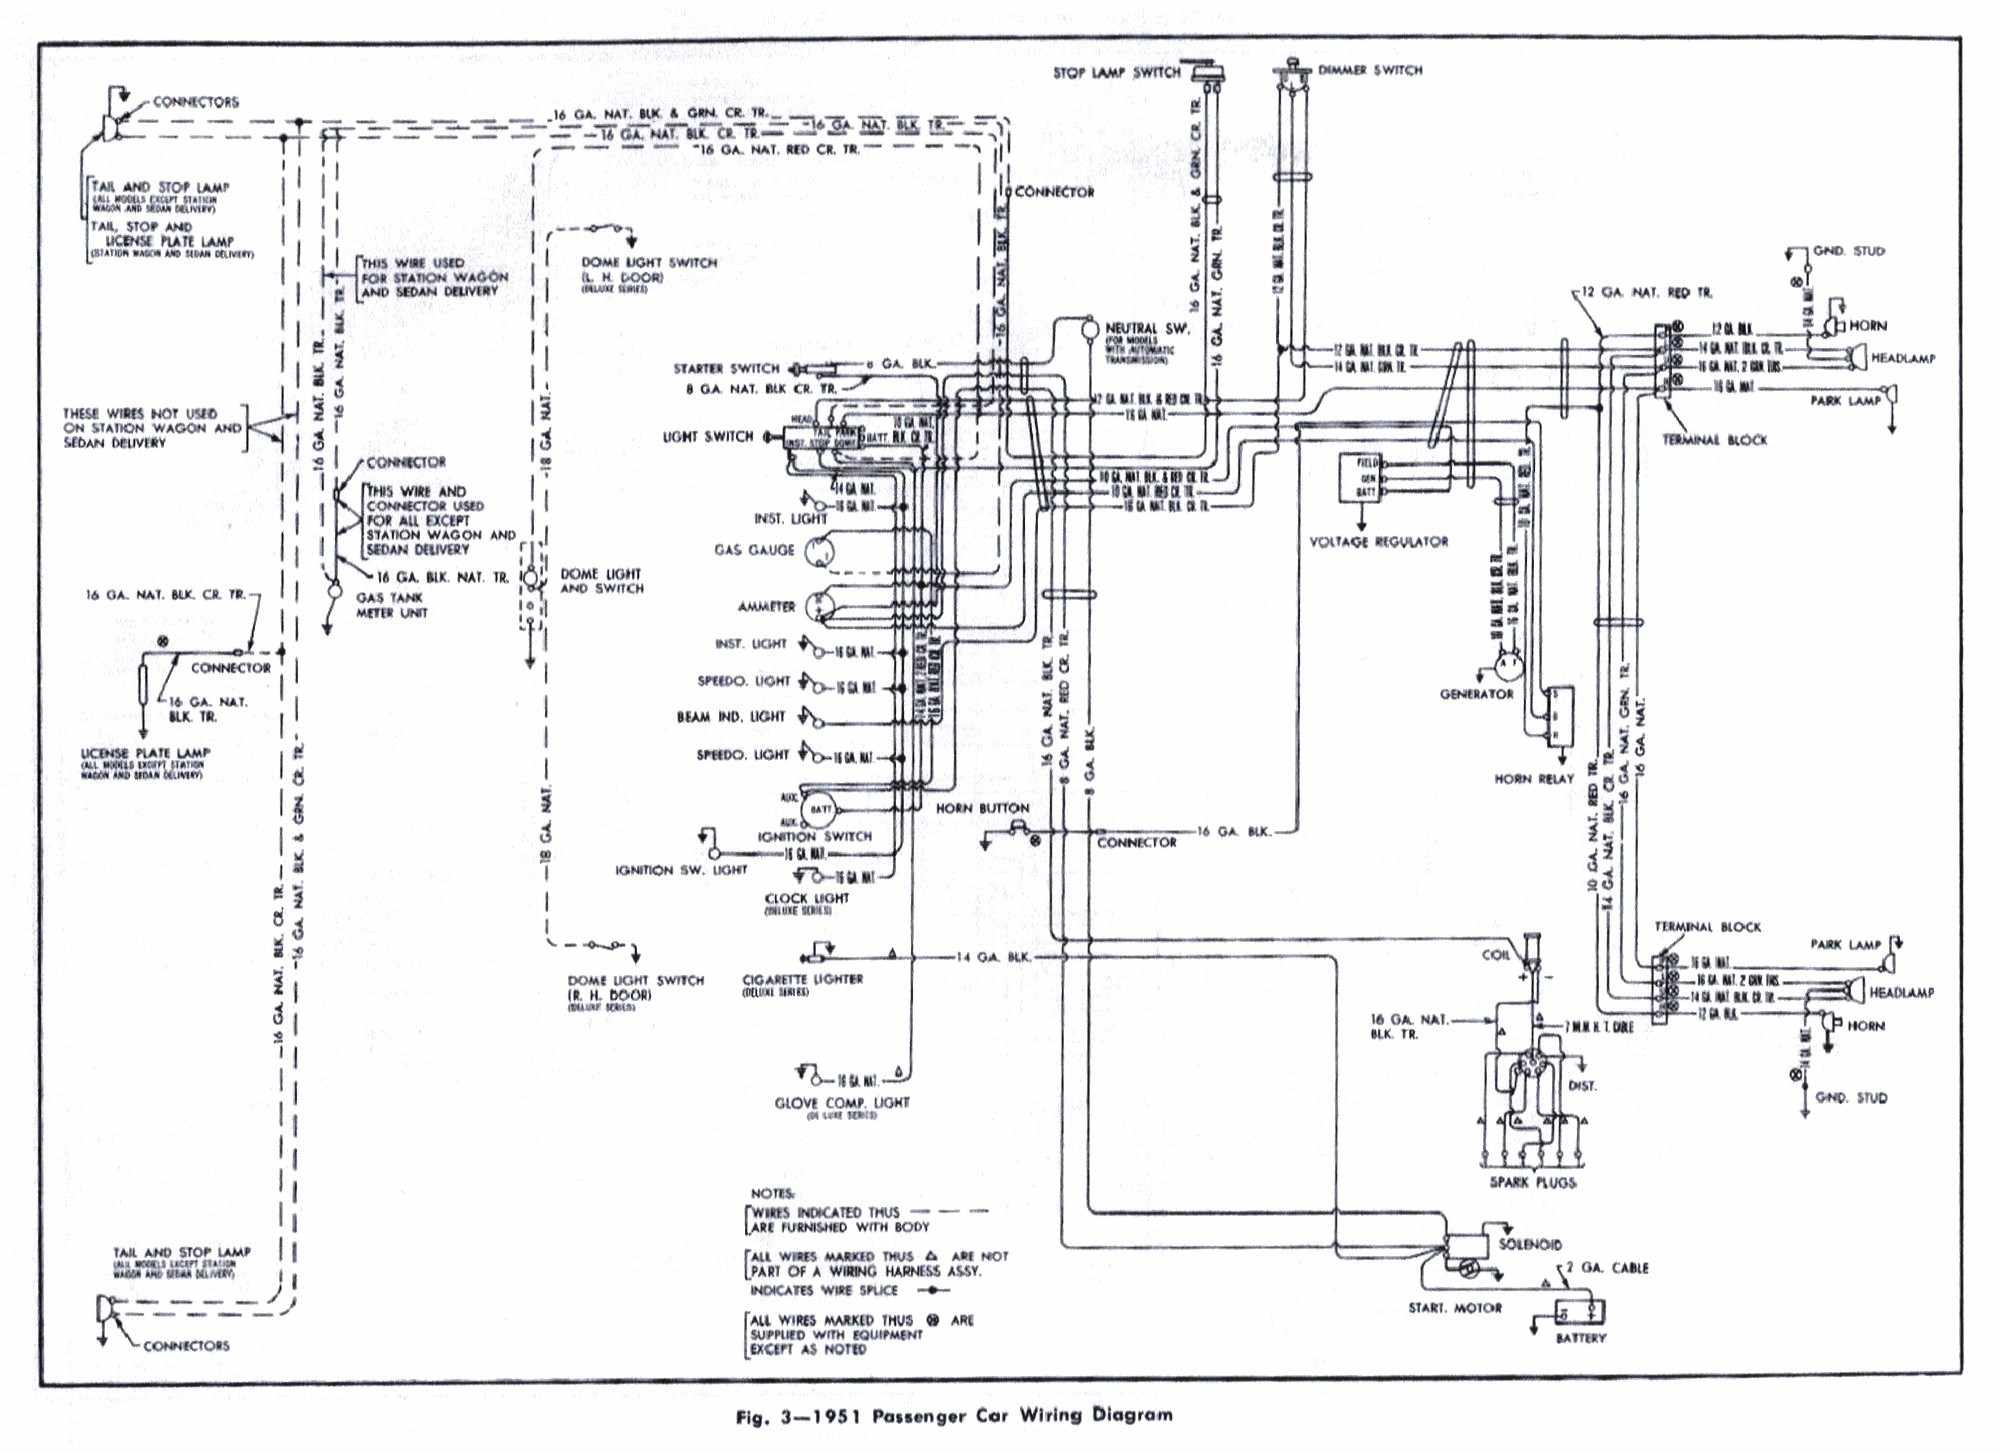 Toyota 5r Electronic Ignition Wiring Diagram